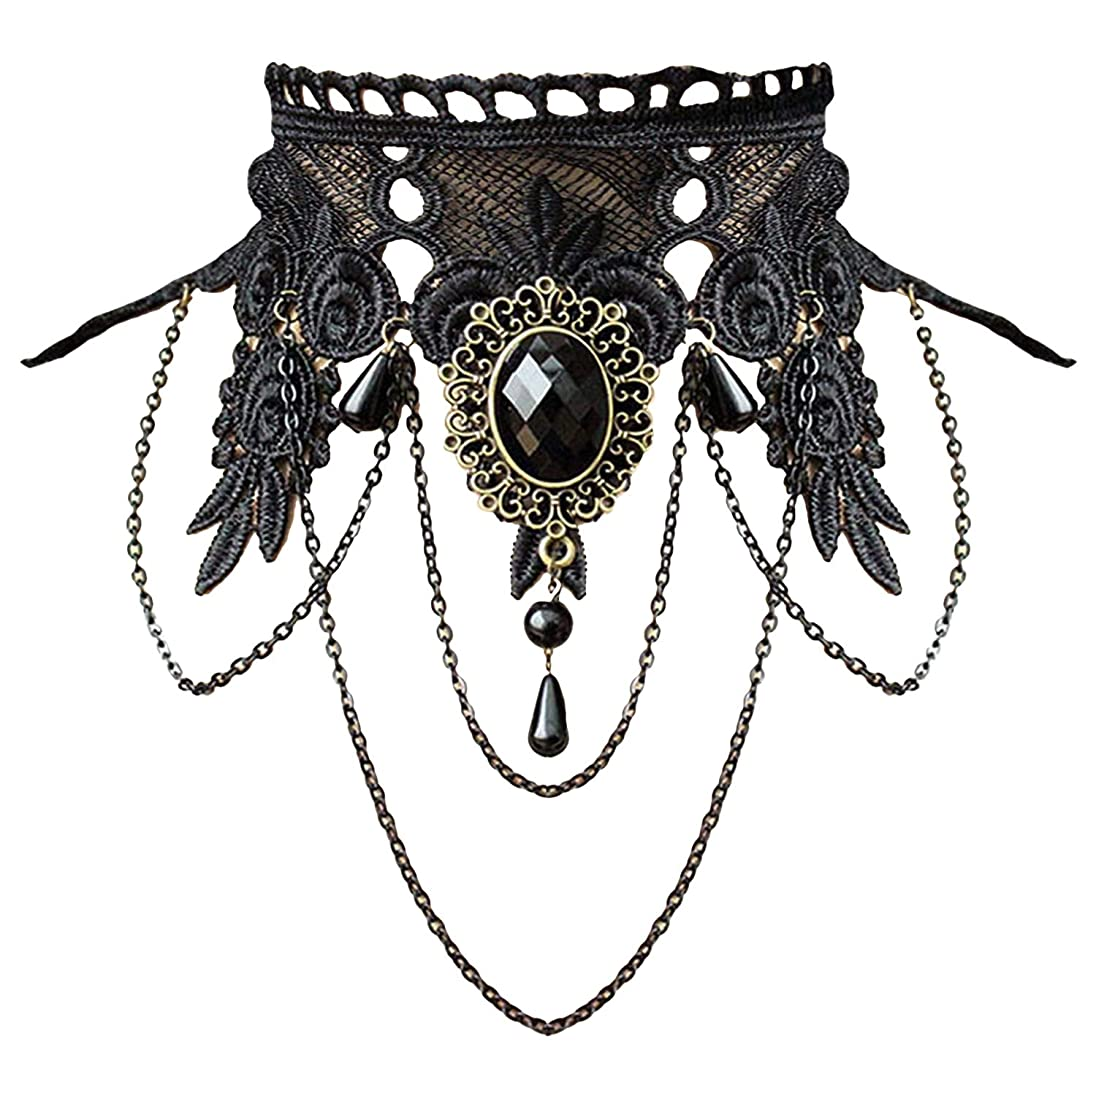 Aniwon Punk Style Wedding Party Black Lace Choker Beads Tassels Chain Pendant Necklace Earring Set for Women